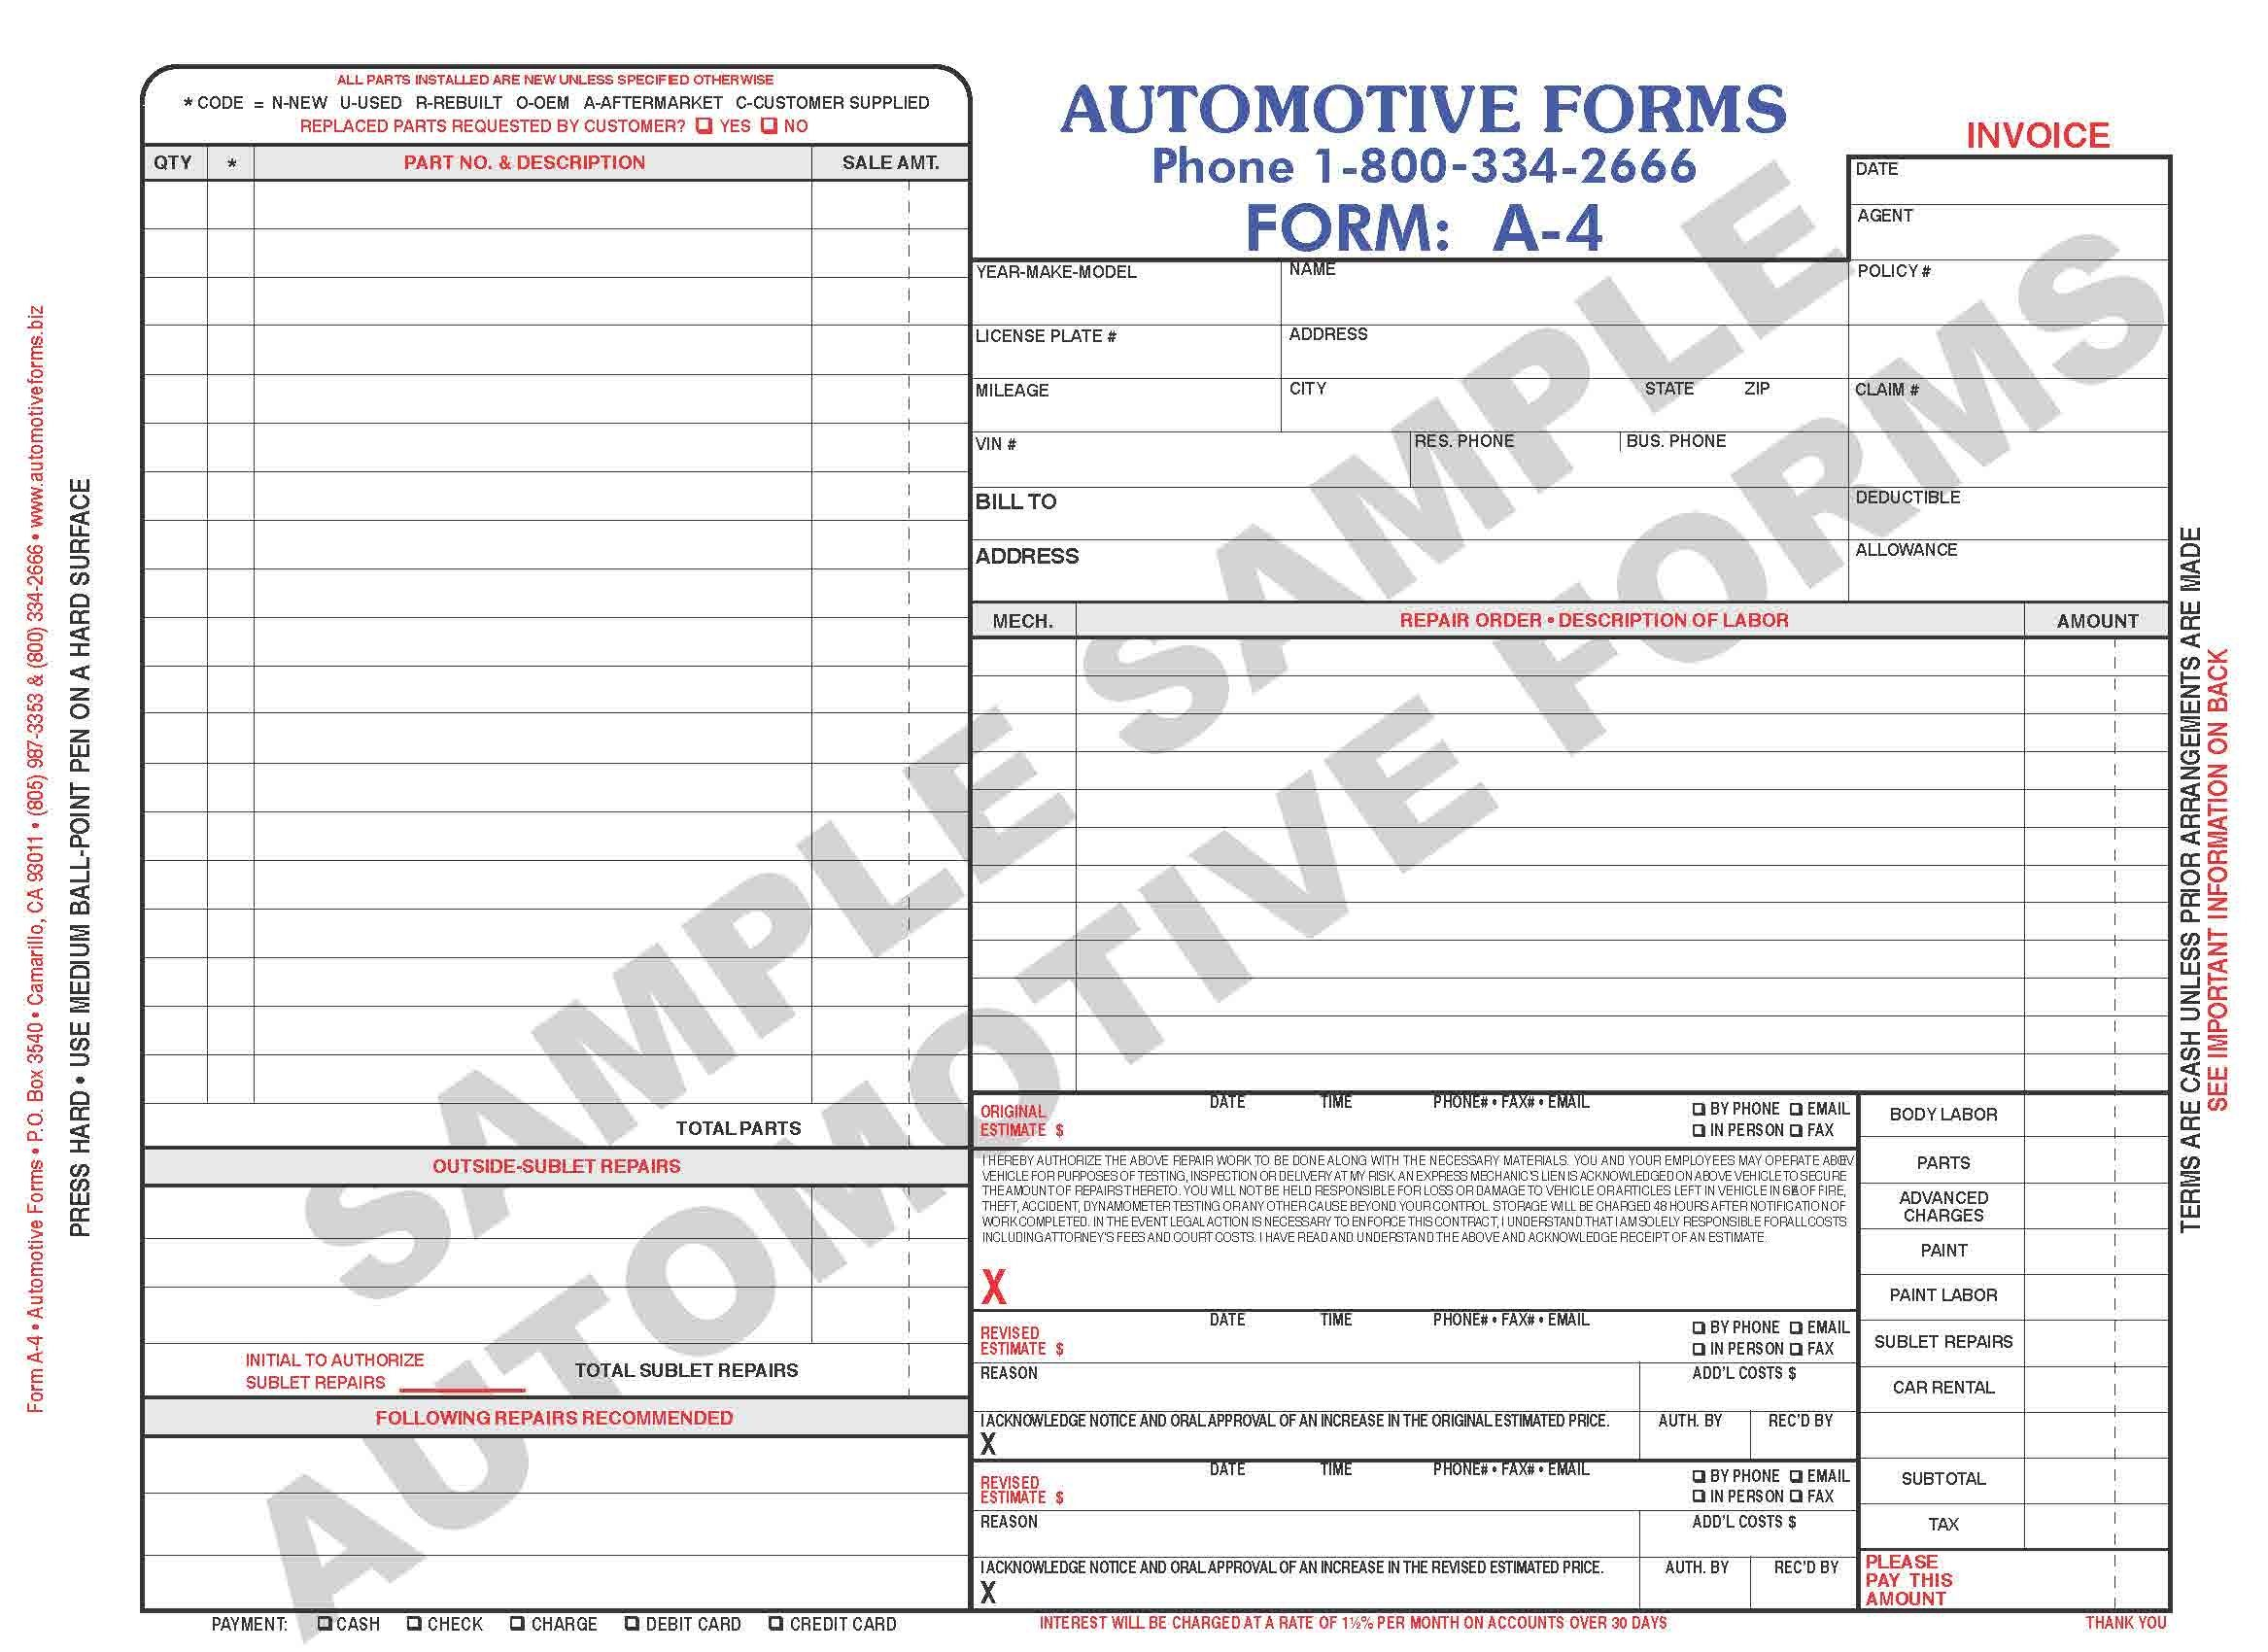 Body Shop Invoice Body Shop Invoice Template Invoice Pinterest - Body shop invoice template